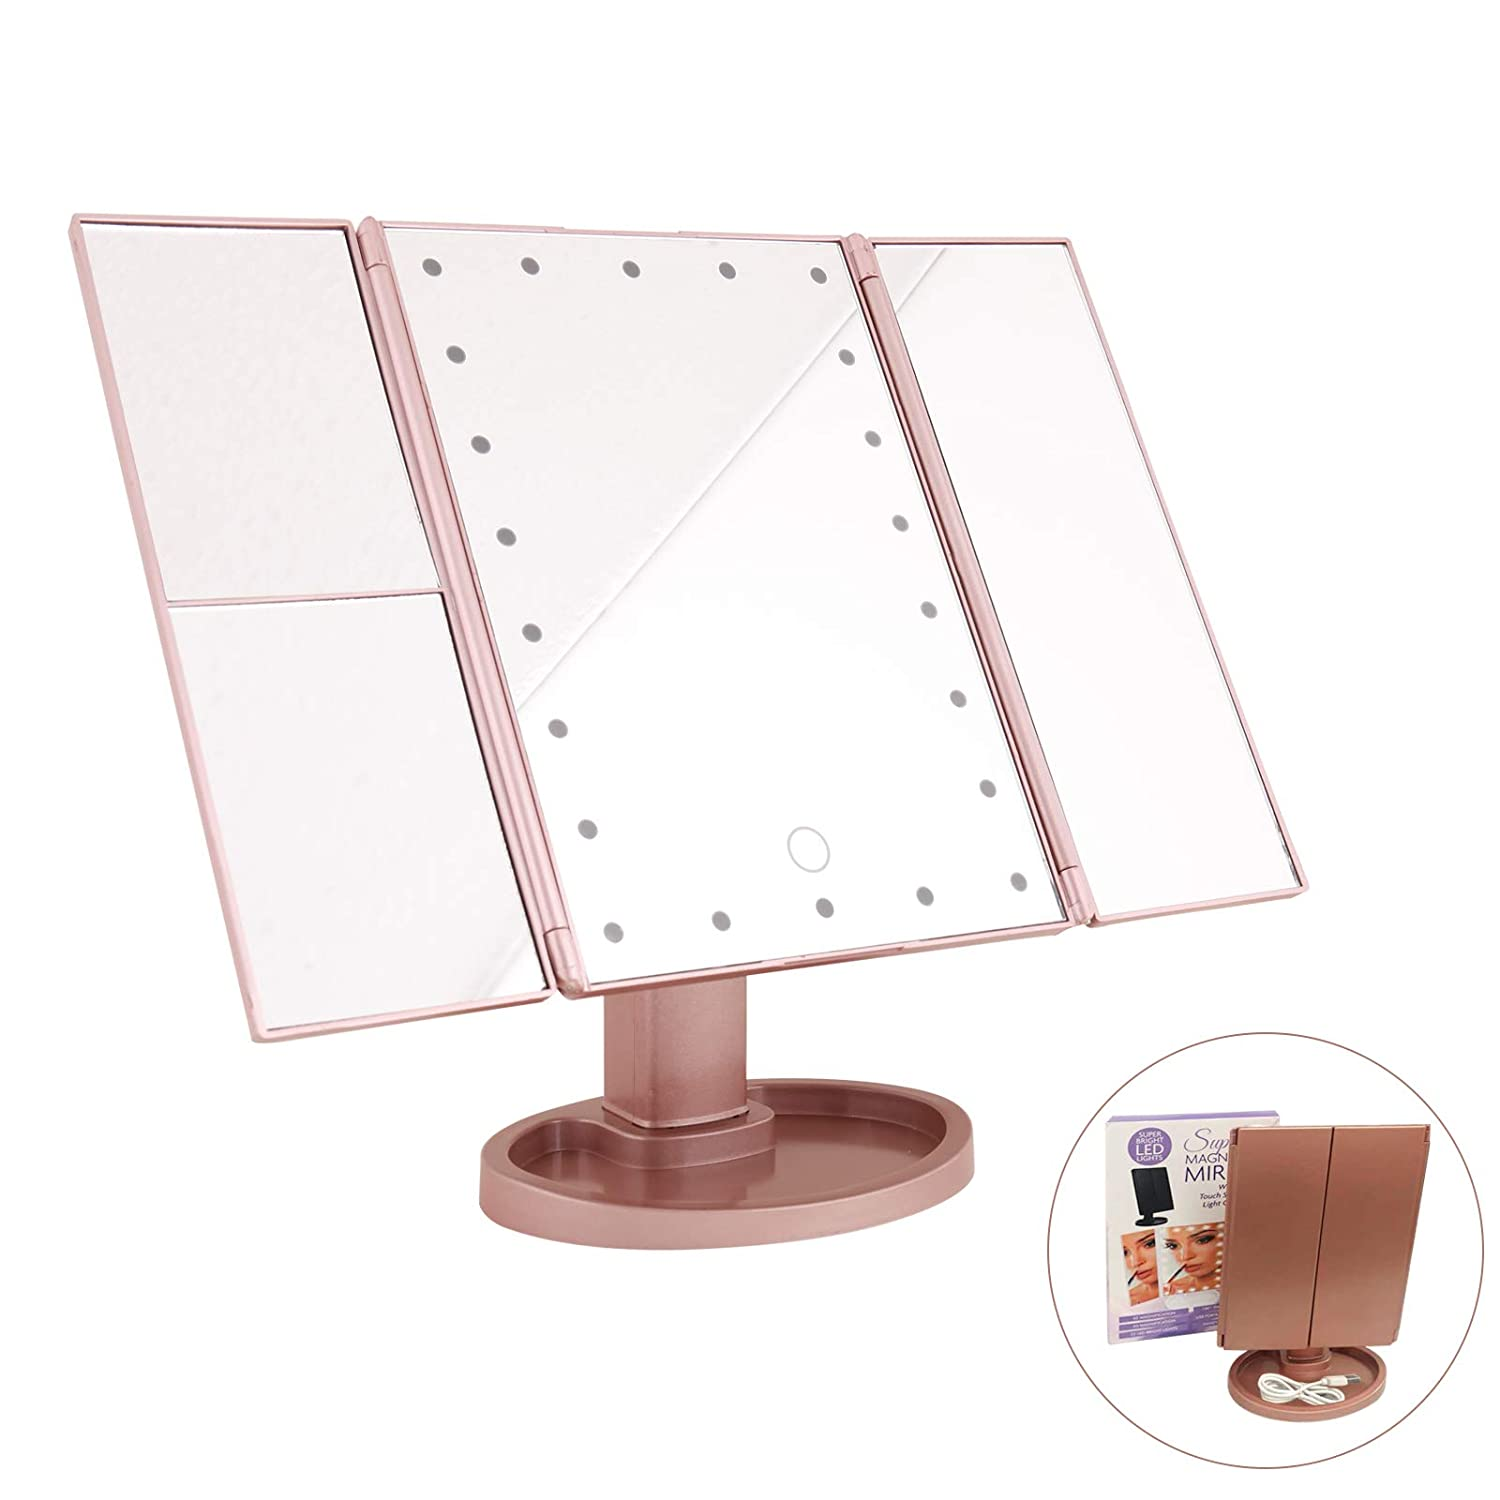 MAKERSLAND Makeup Mirror Lighted Makeup Vanity Mirror with 22 LED Lights, 180 Degree Rotation 2X 3X Magnification,LED Trifold Makeup Mirror with Touch Screen